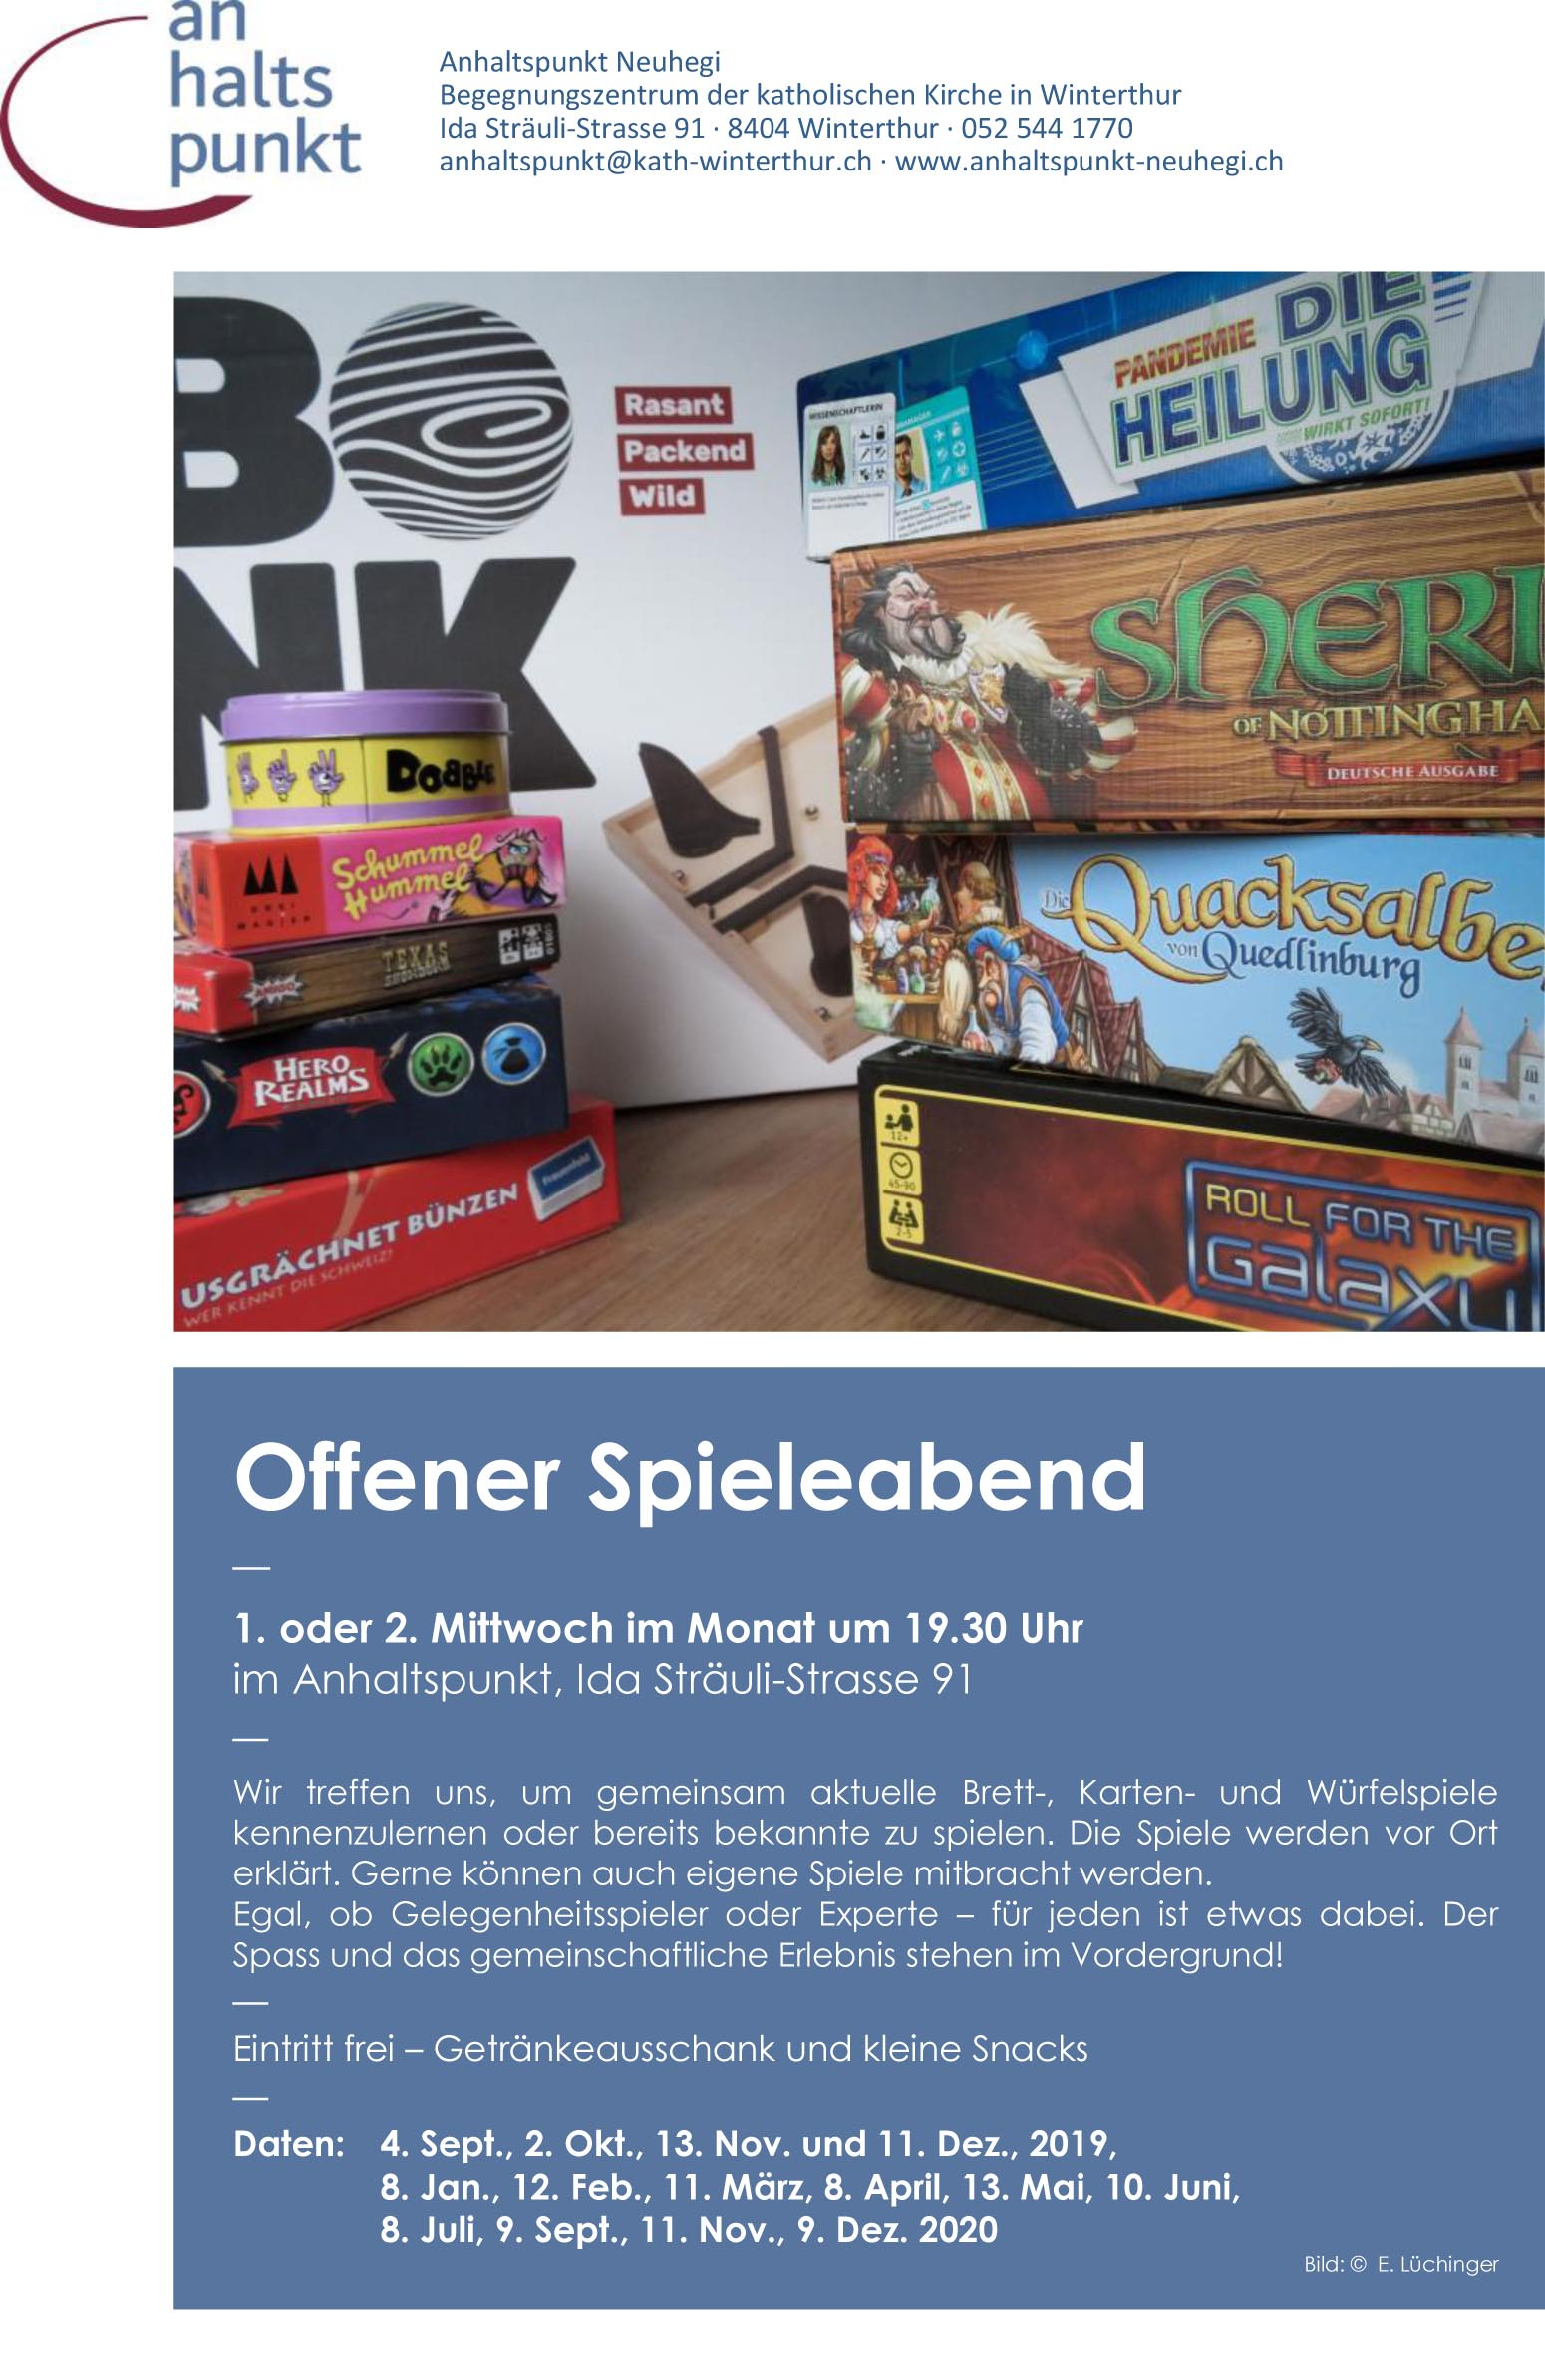 ahp Spieleabend 19 20